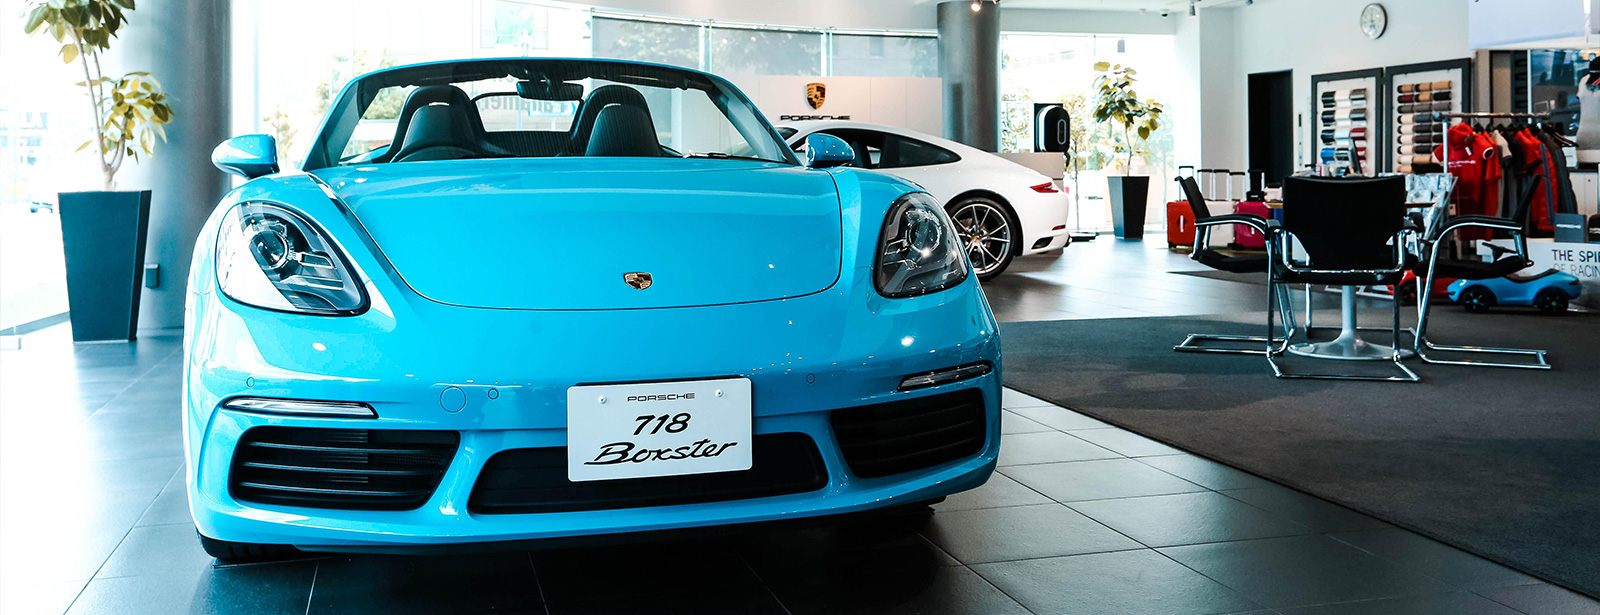 Porsche Center Nishinomiya.